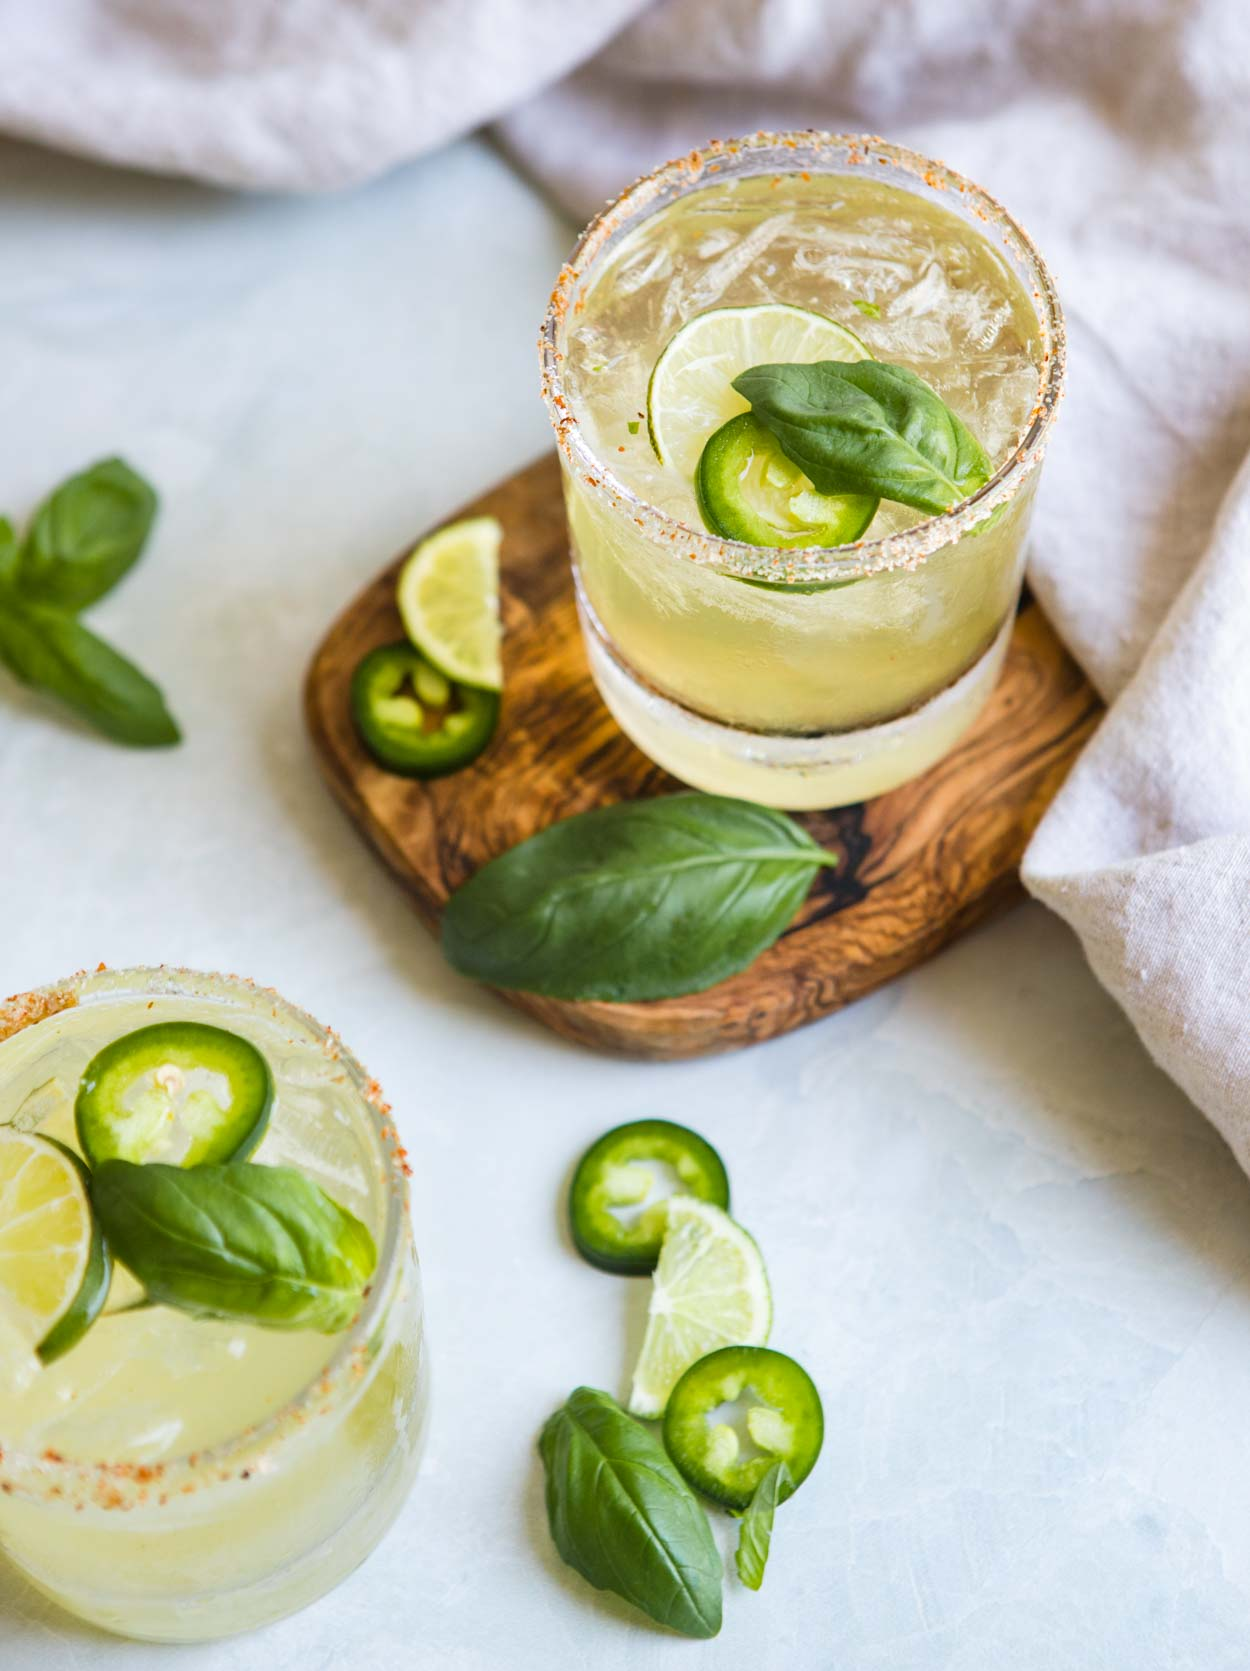 close up glass of jalapeno margarita recipe with lime, cucumber and basil garnish